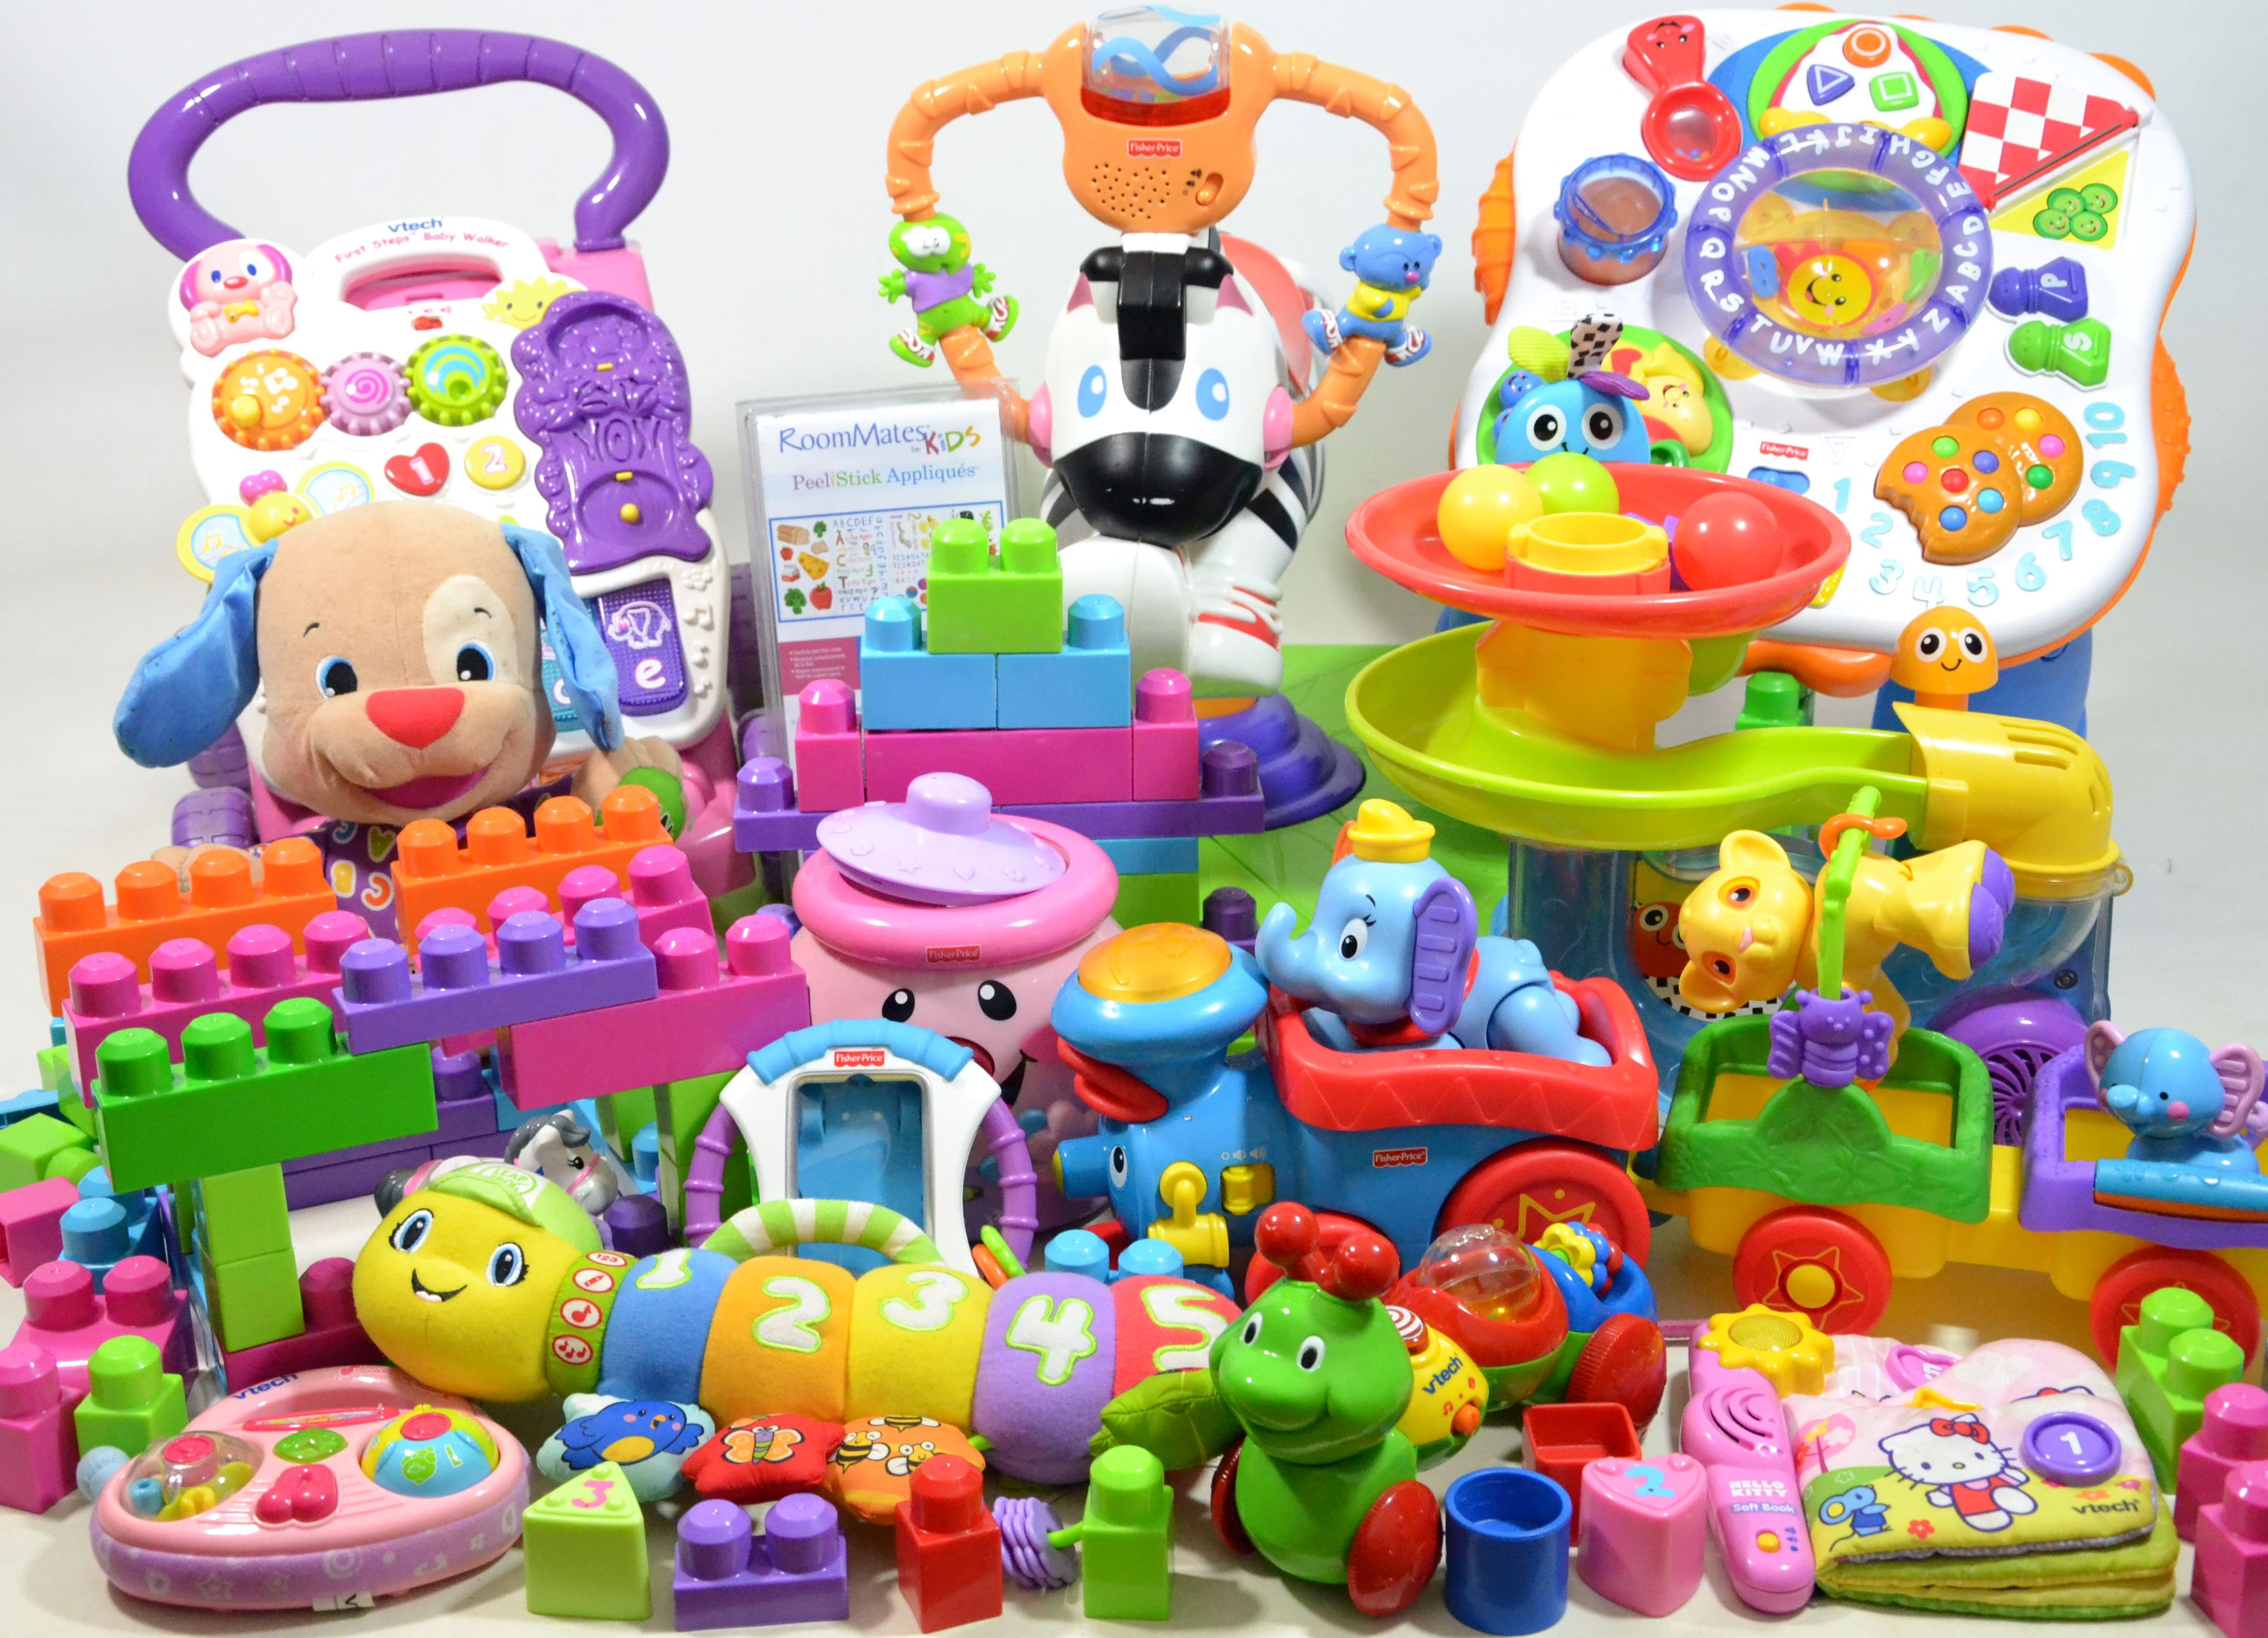 Quality baby toddler toy bundle vtech fisher price ideal for xmas